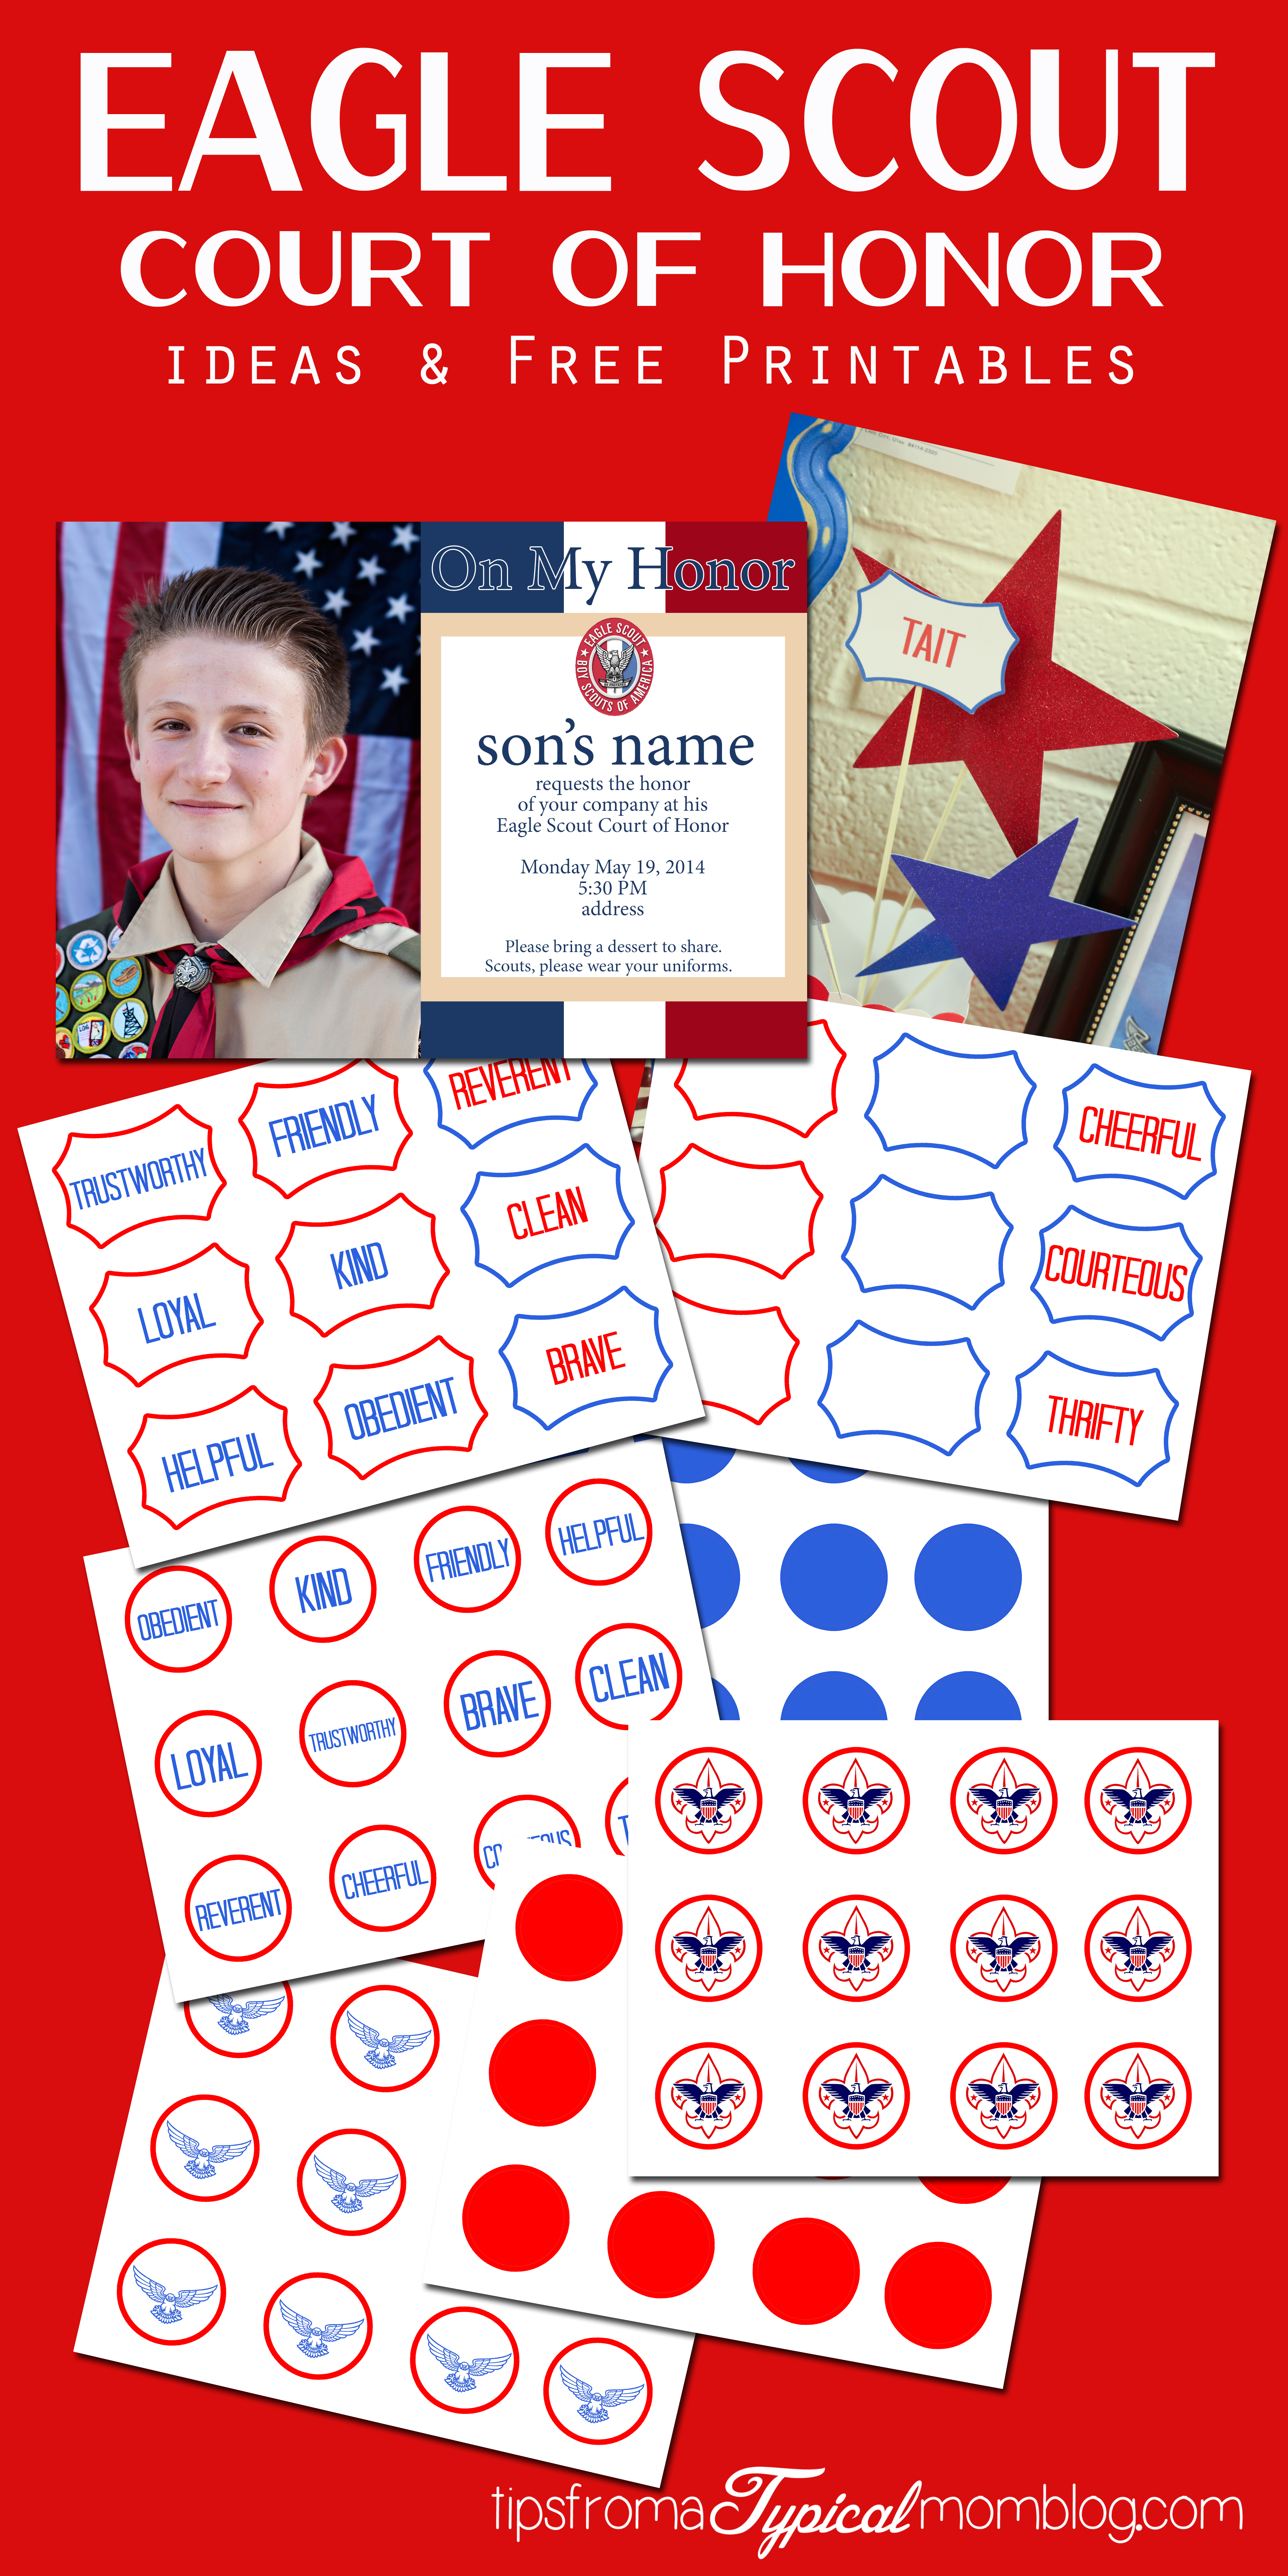 graphic regarding Eagle Scout Congratulations Card Printable titled Eagle Scout Courtroom of Honor Plans and Absolutely free Printables